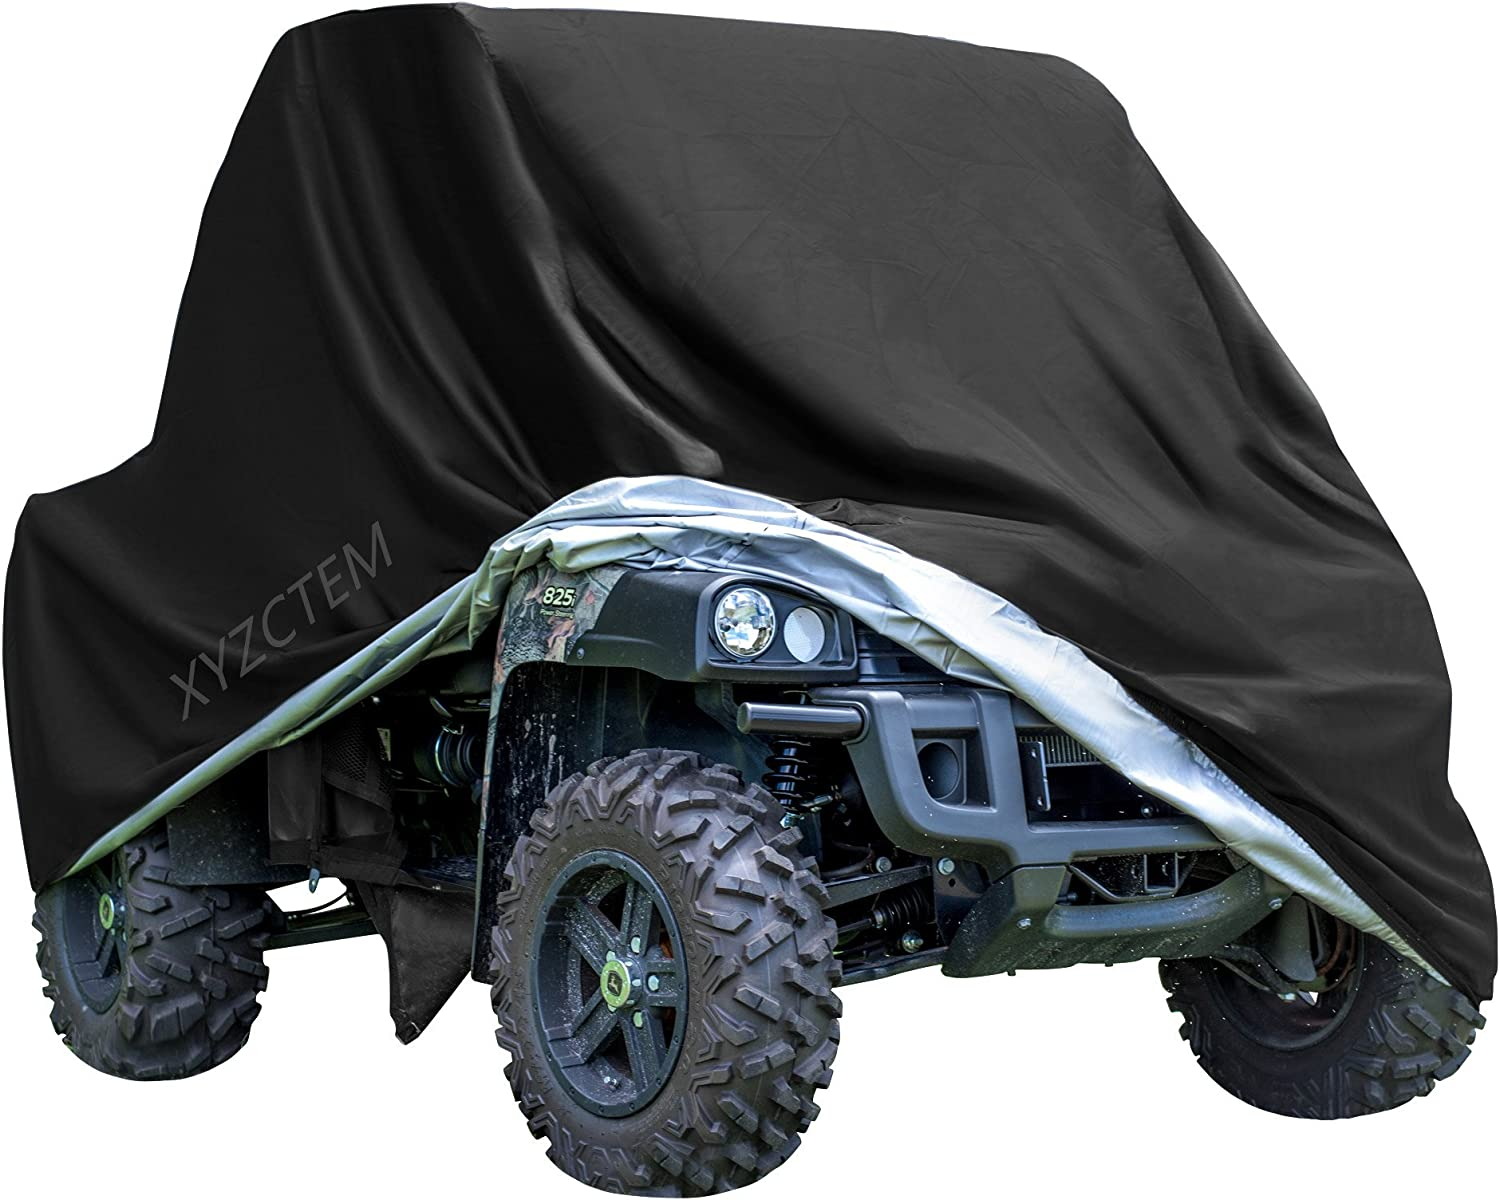 Nomiou Waterproof UTV Cover with Storage Bag Heavy Duty Black Protects 4 Wheeler From Snow Rain Dust and Sun 115 x 59 x 75 inch